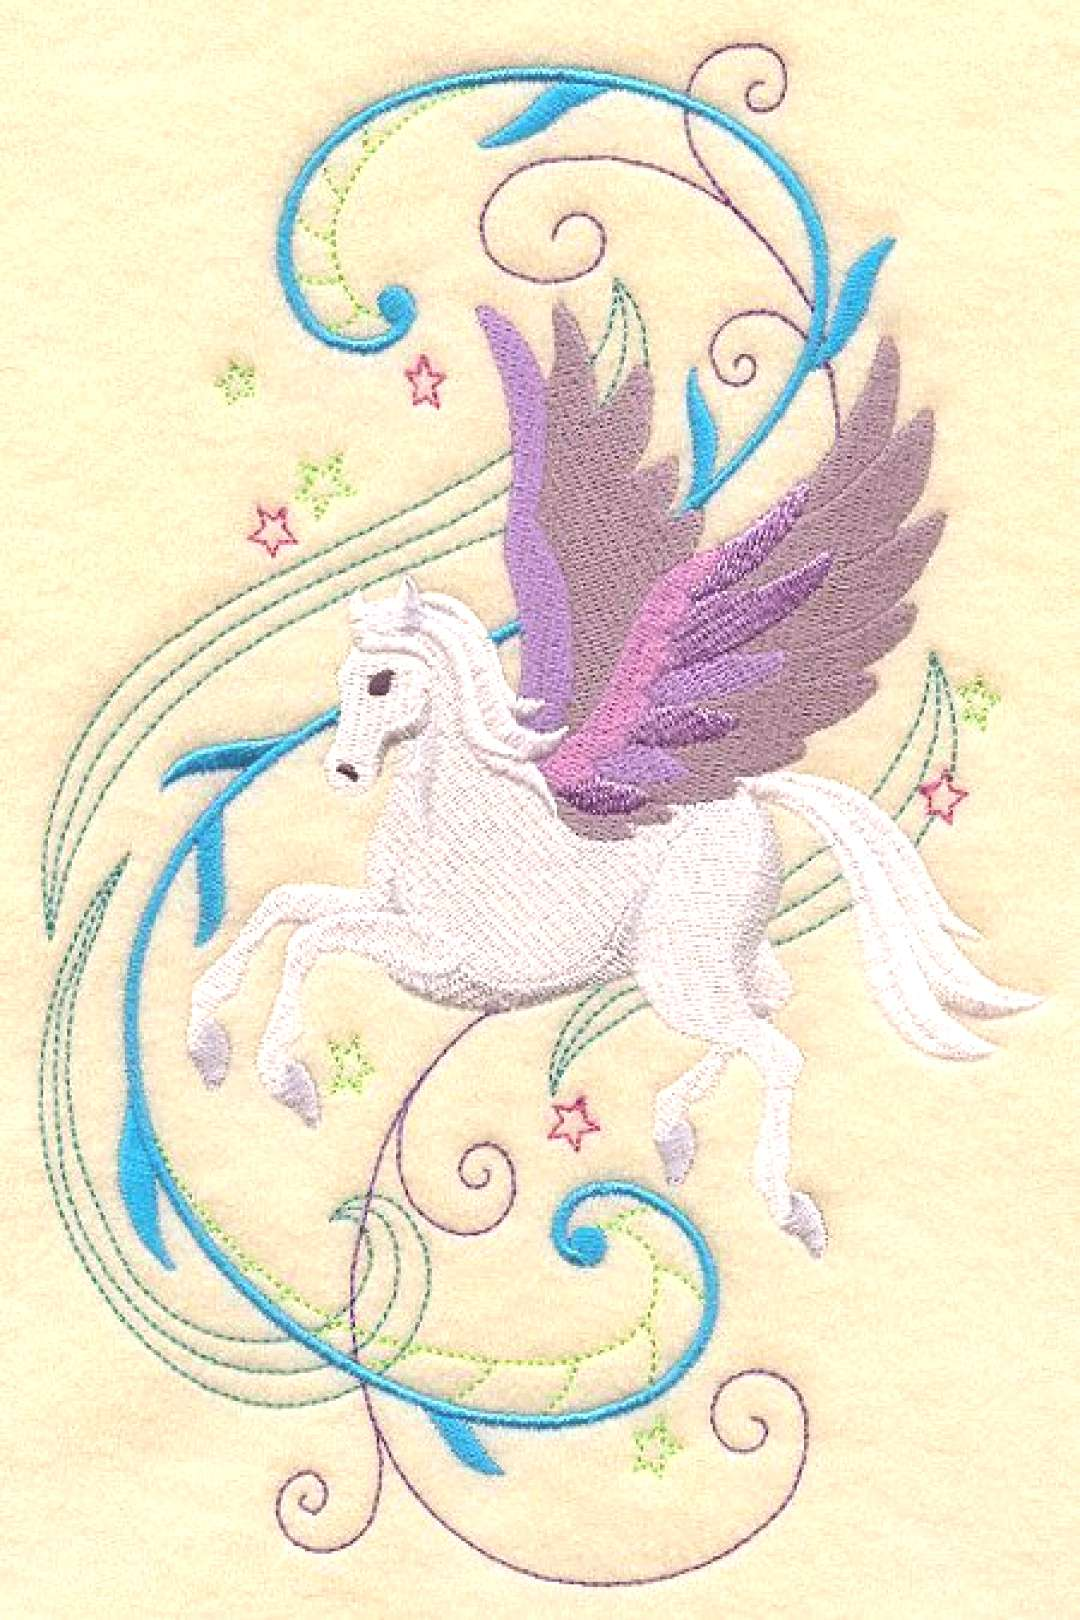 PEGASUS In FANTASY FLIGHT - Maschinengestickter Quiltblock (AzEB) PEGASUS In FANTASY FLIGHT - Masch